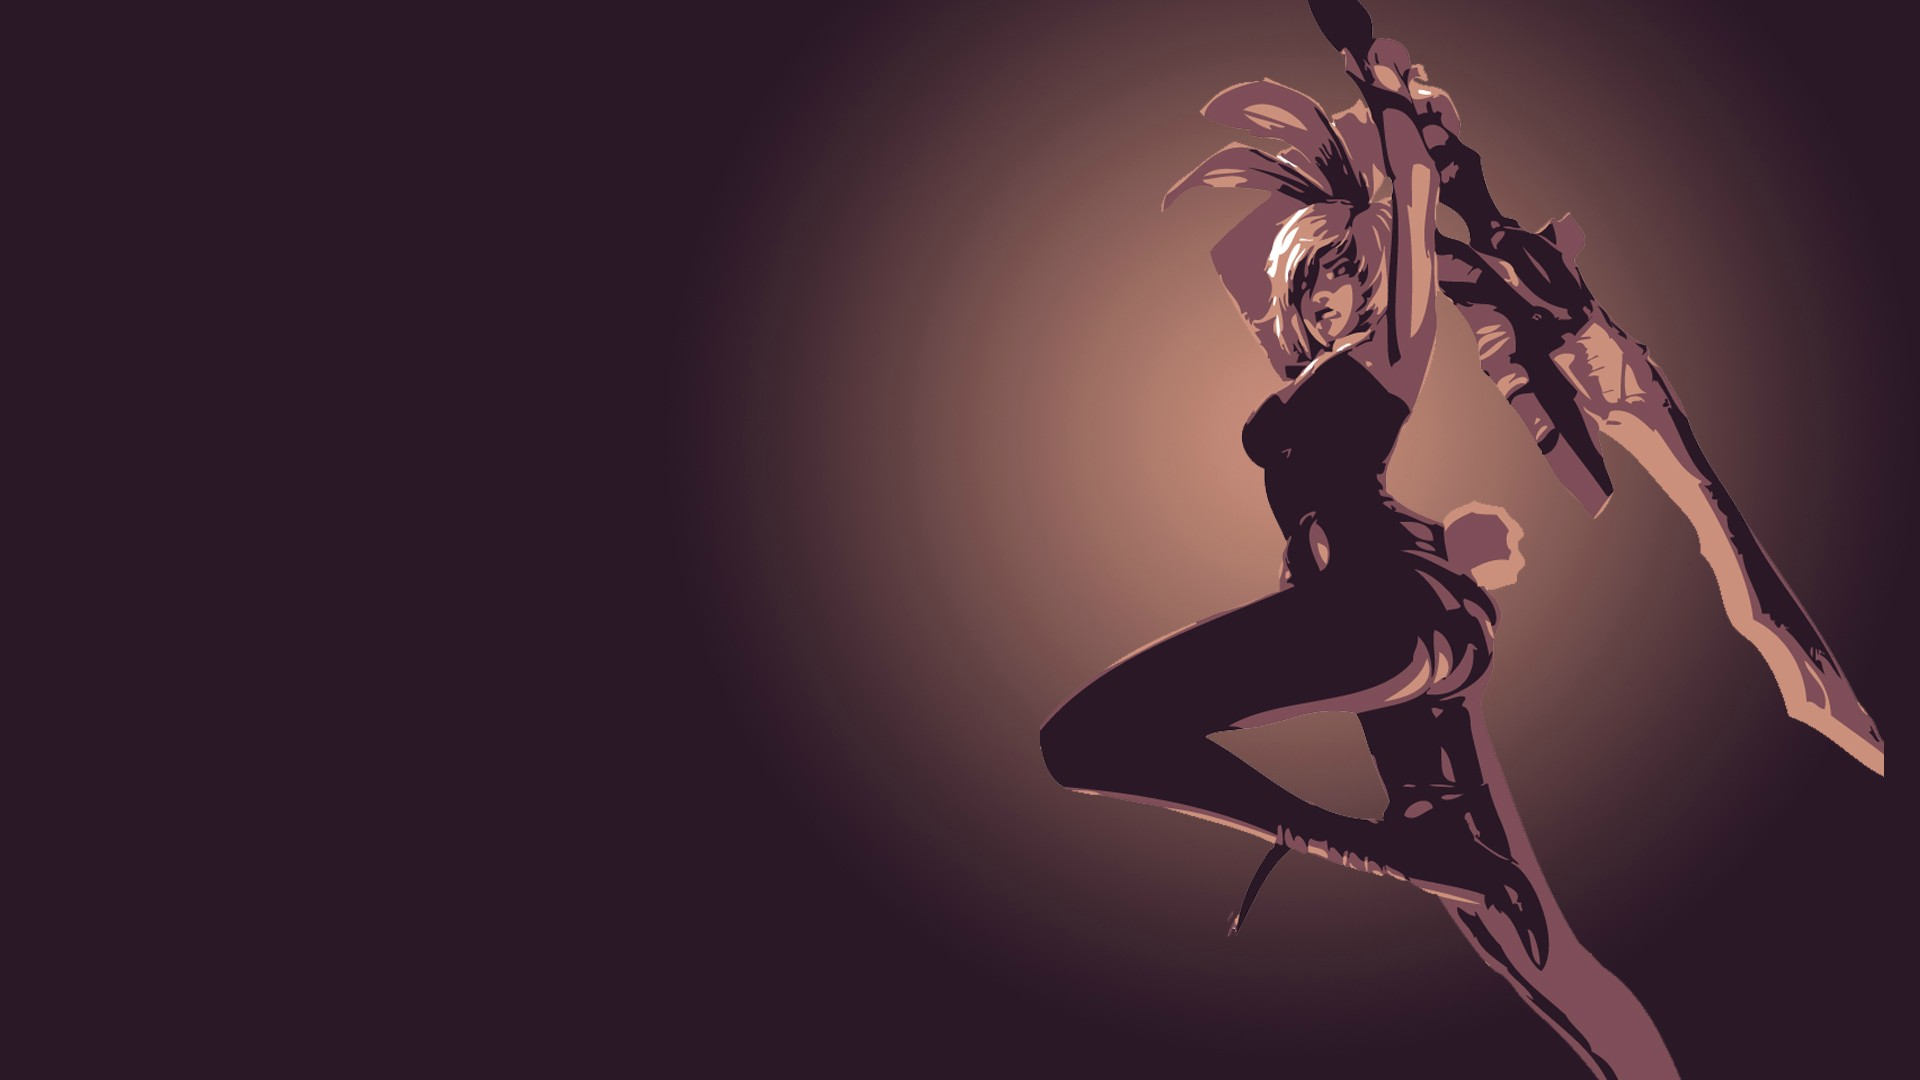 Battle Bunny Riven Minimalistic wallpaper